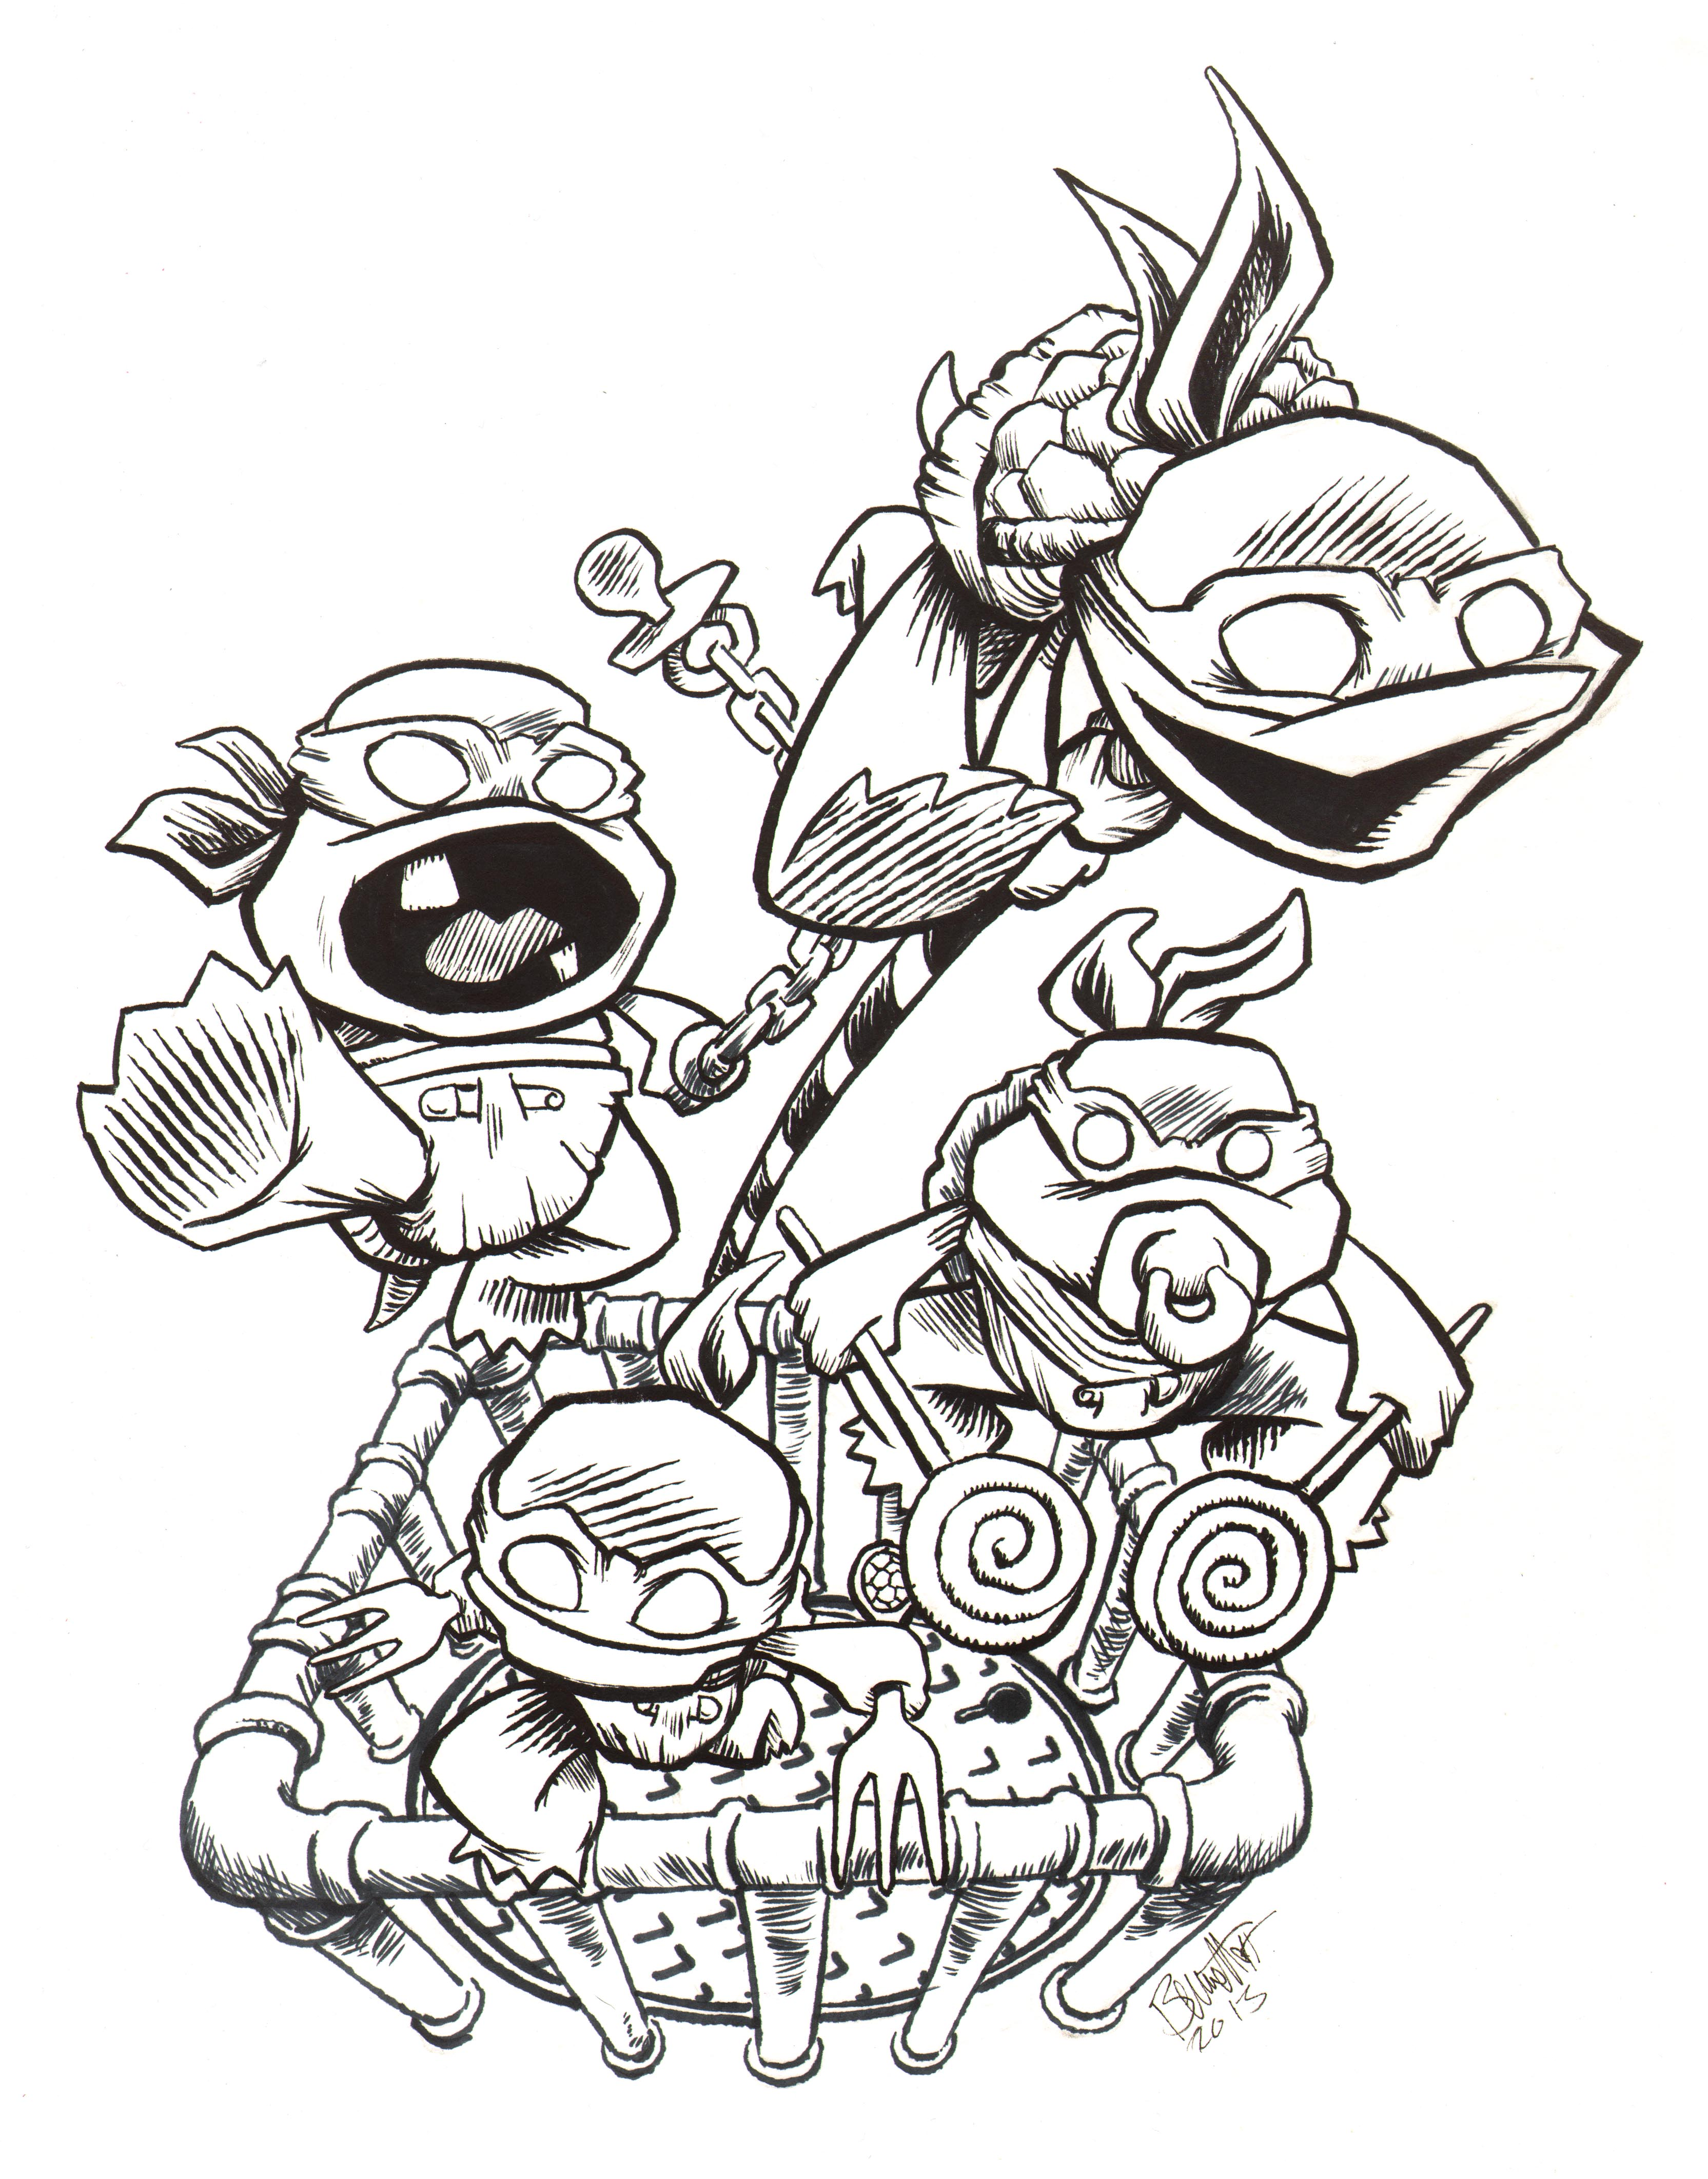 Toddler Mutant Ninja Turtles by artistjerrybennett on ...